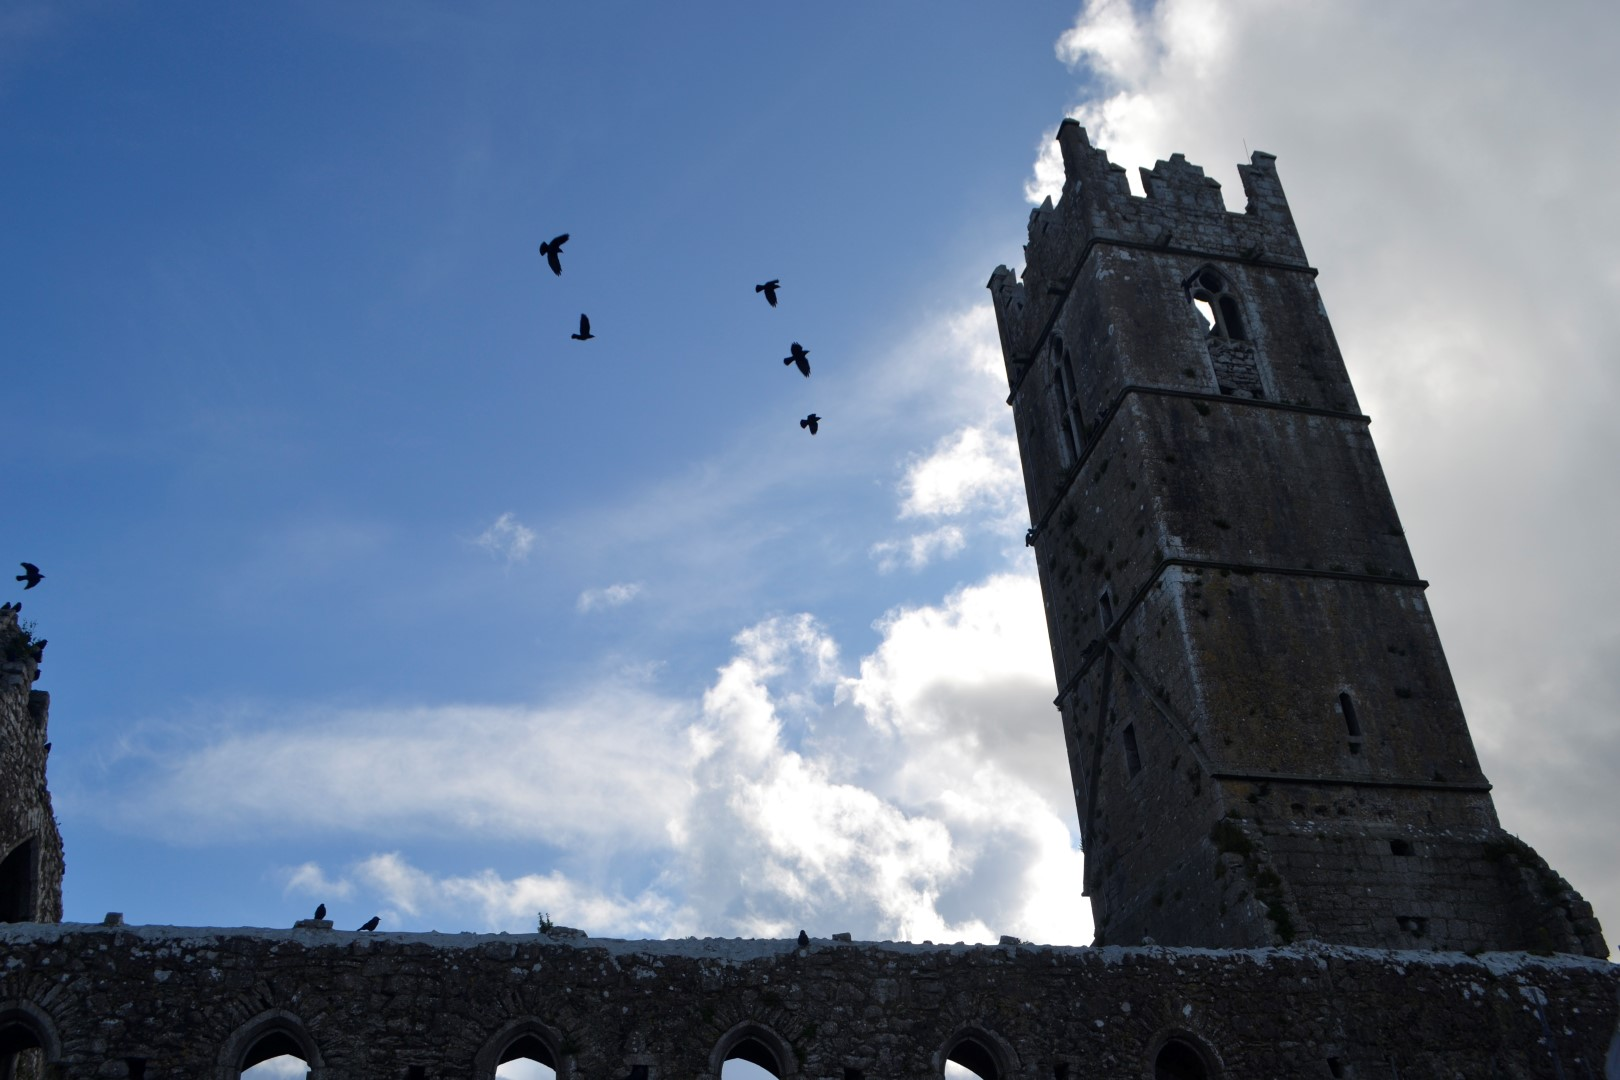 Clary Galway Fransciscan Priory, photo: Andy Bruner